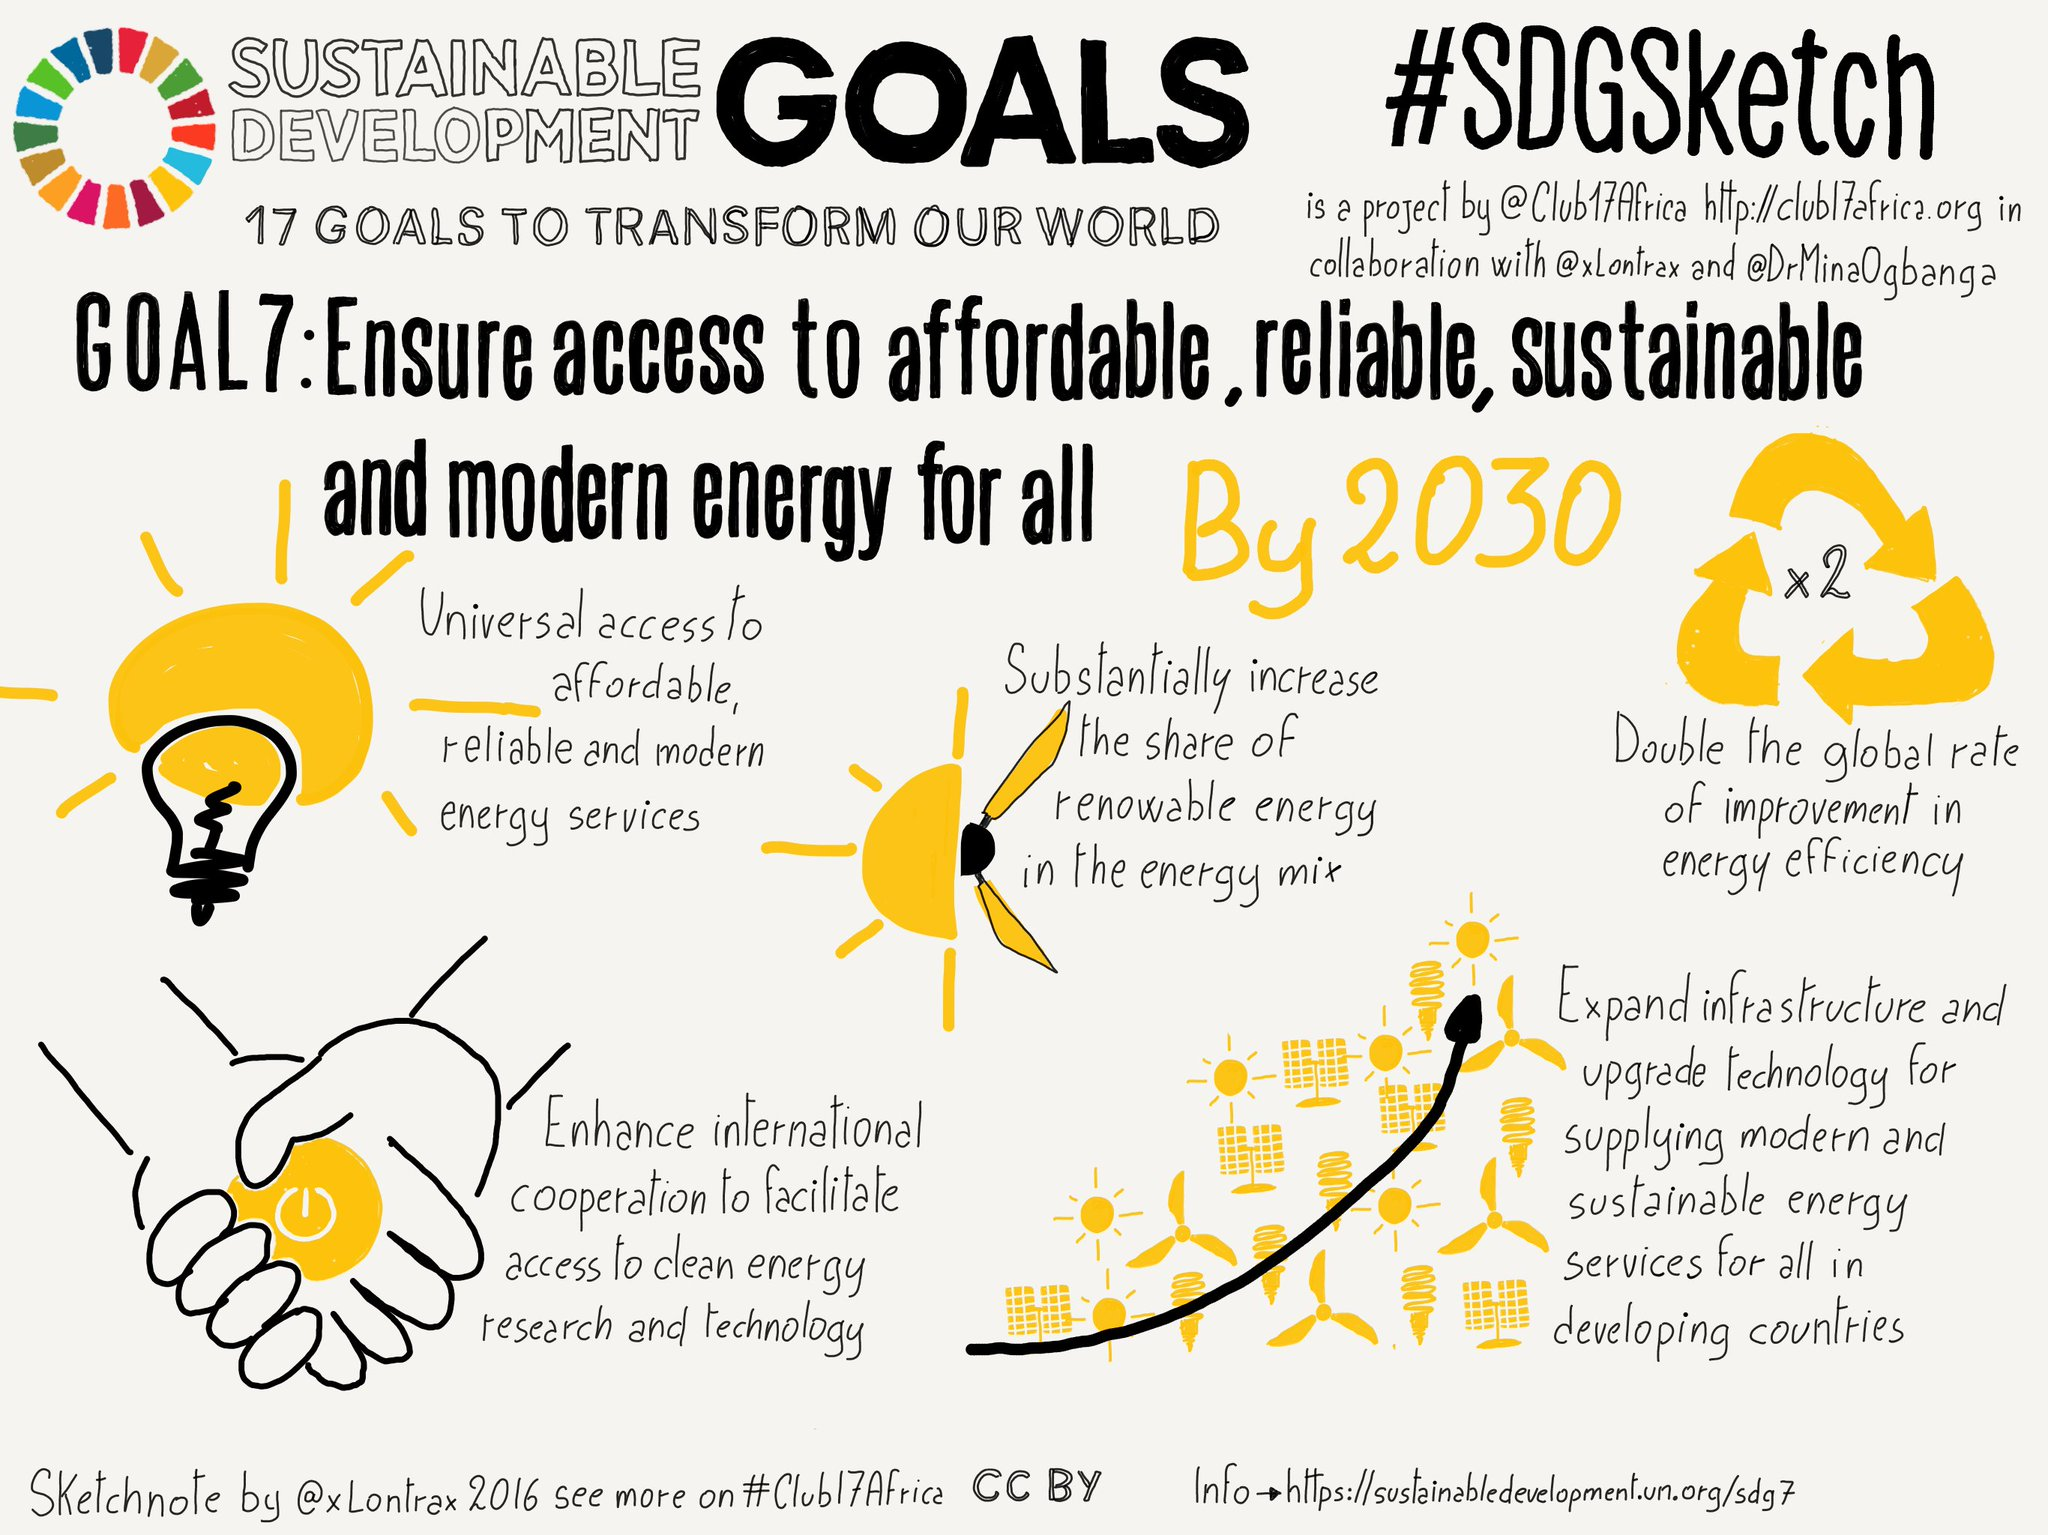 Goal 7. Affordable and Clean Energy - #SDGSketch prj on @SDGoals with #Club17Africa and @DrMinaOgbanga @ravikarkara https://t.co/f1WSlqPBIn